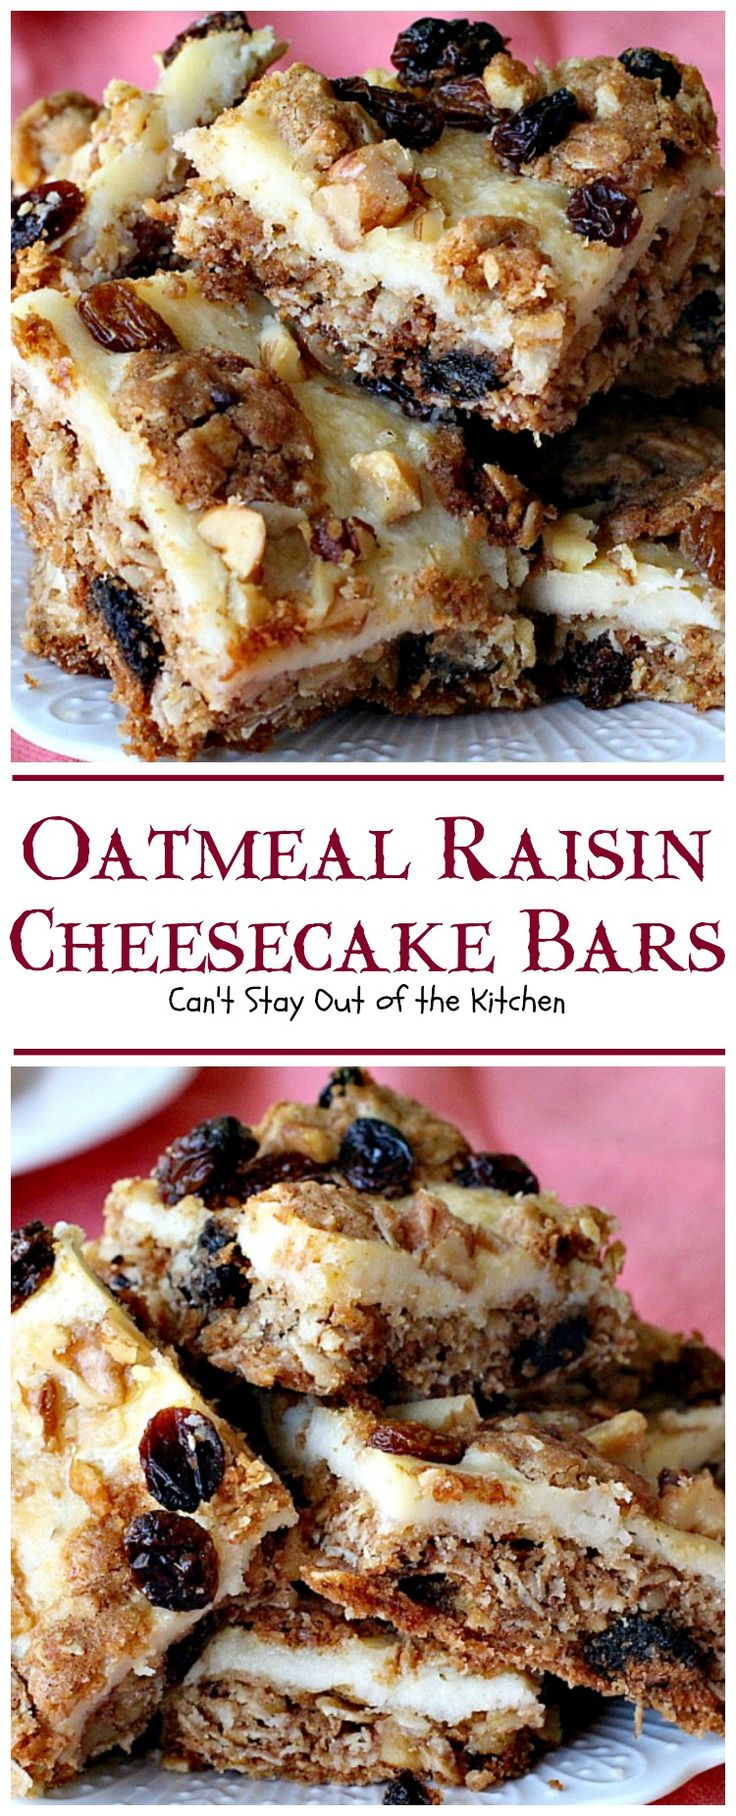 Oatmeal Raisin Cheesecake Bars are a great twist on the classic Oatmeal Raisin Cookies. Adding a cheesecake layer makes them spectacular.